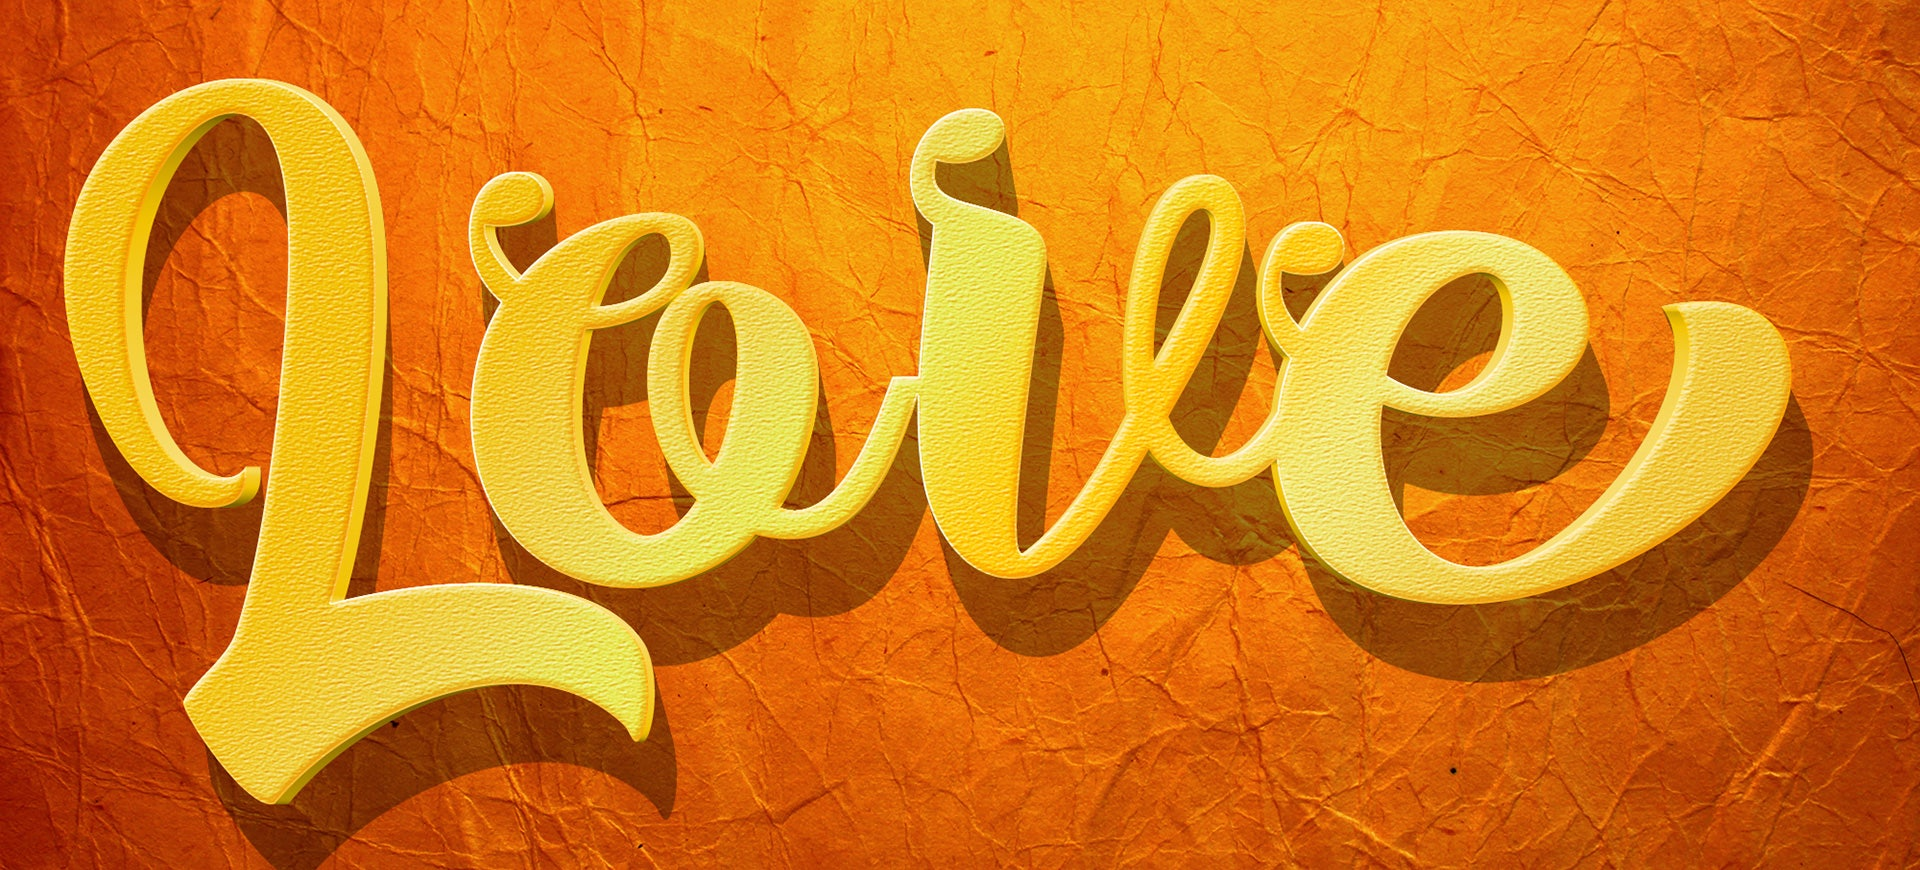 22+ Examples of 3D Text Effects for Designers - PSD, AI